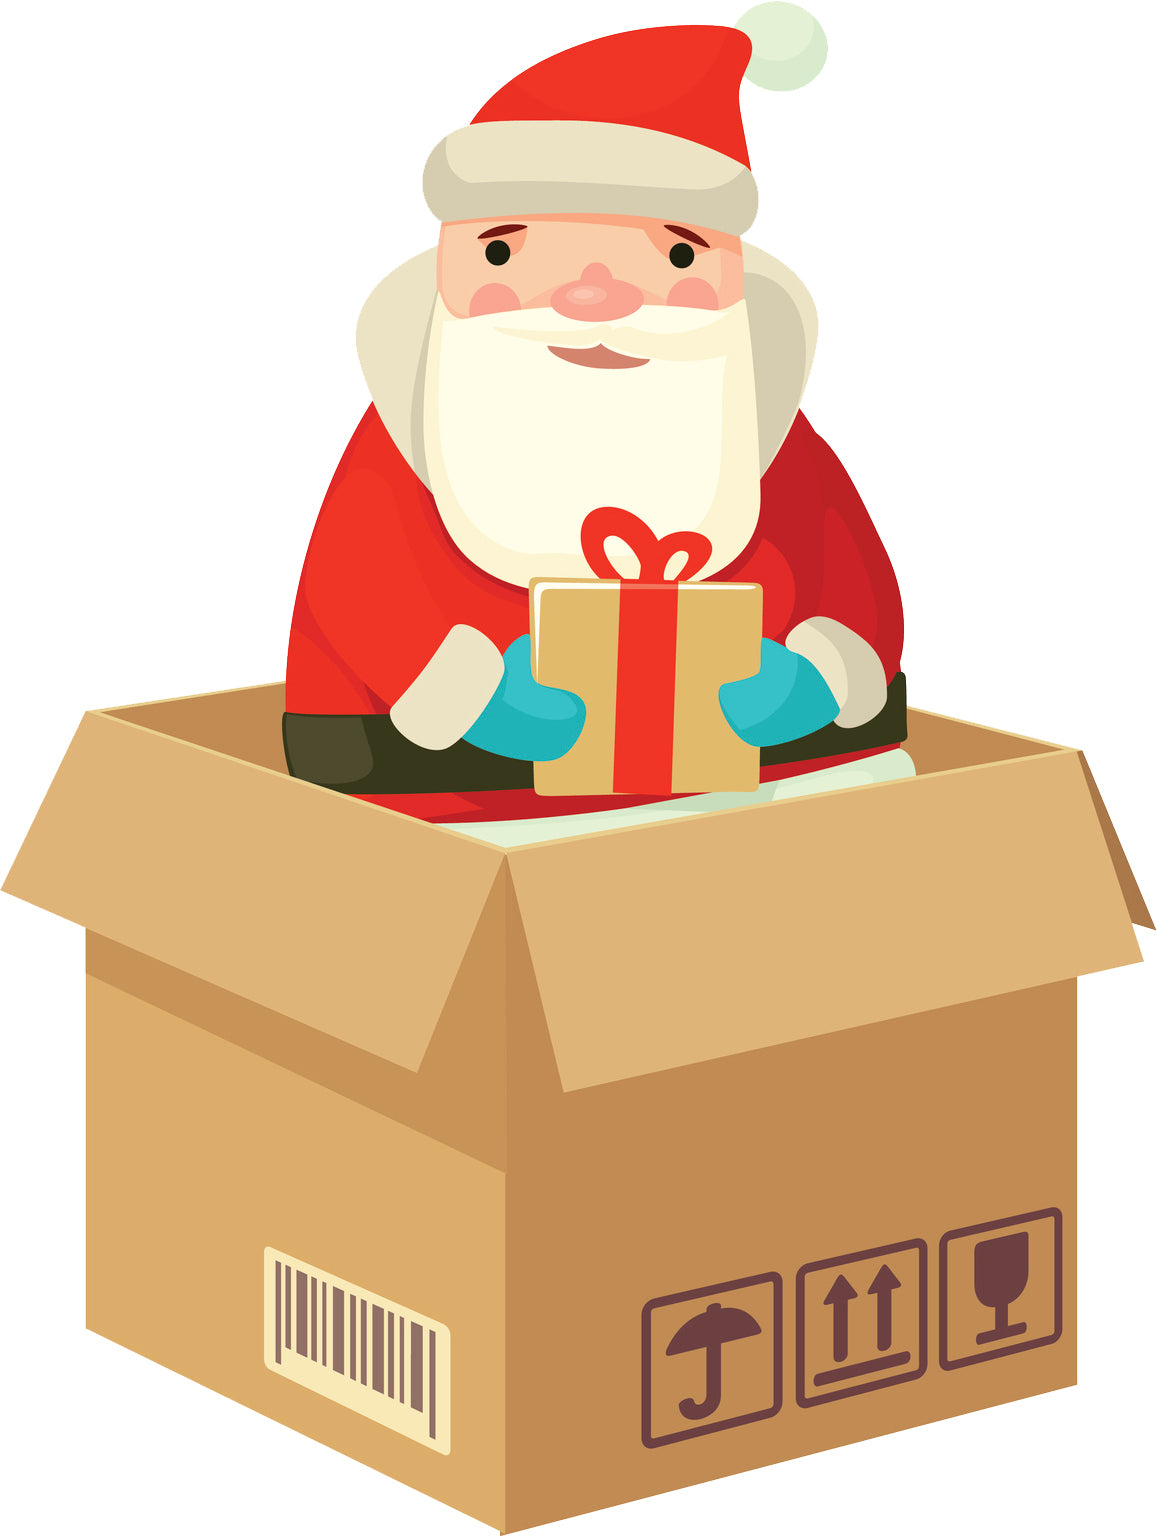 Cute Adorable Santa Delivery in Package Box Vinyl Decal Sticker